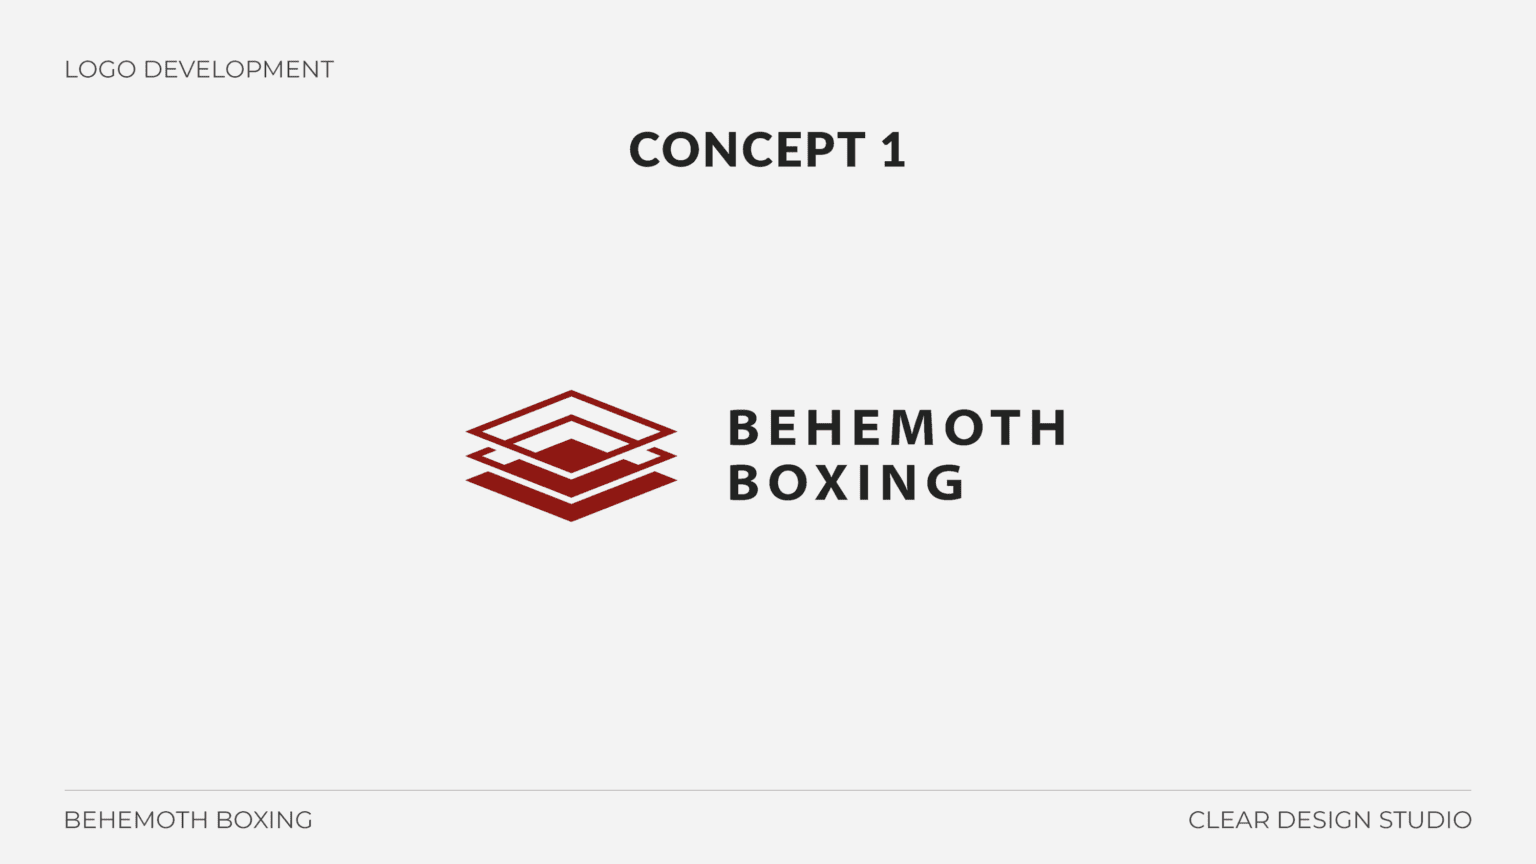 Behemoth Boxing Logo Design Concept 1